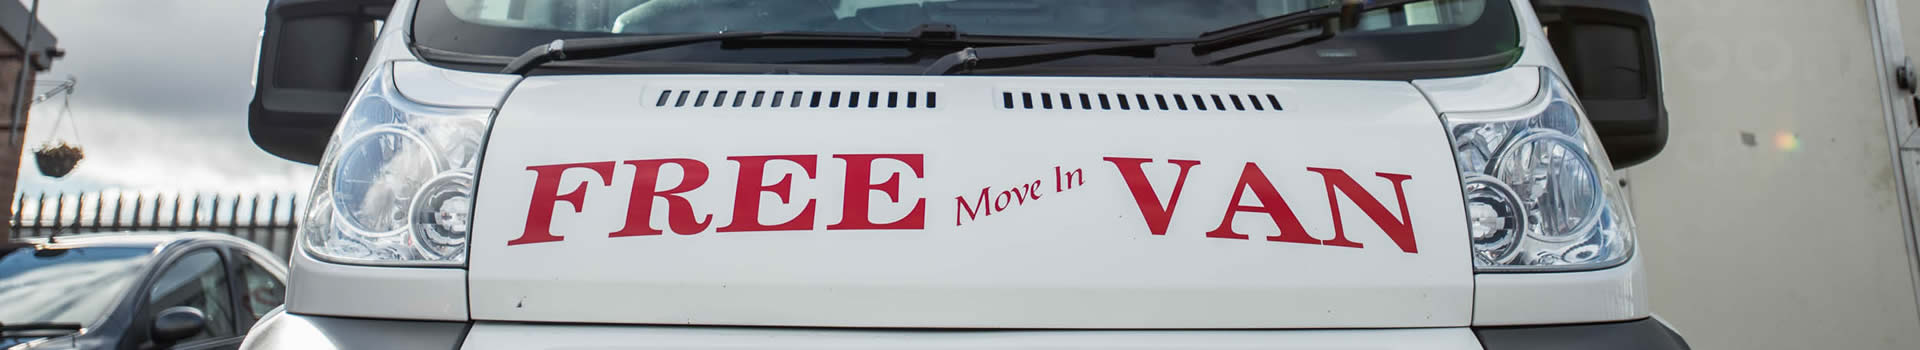 Free move in van Perth